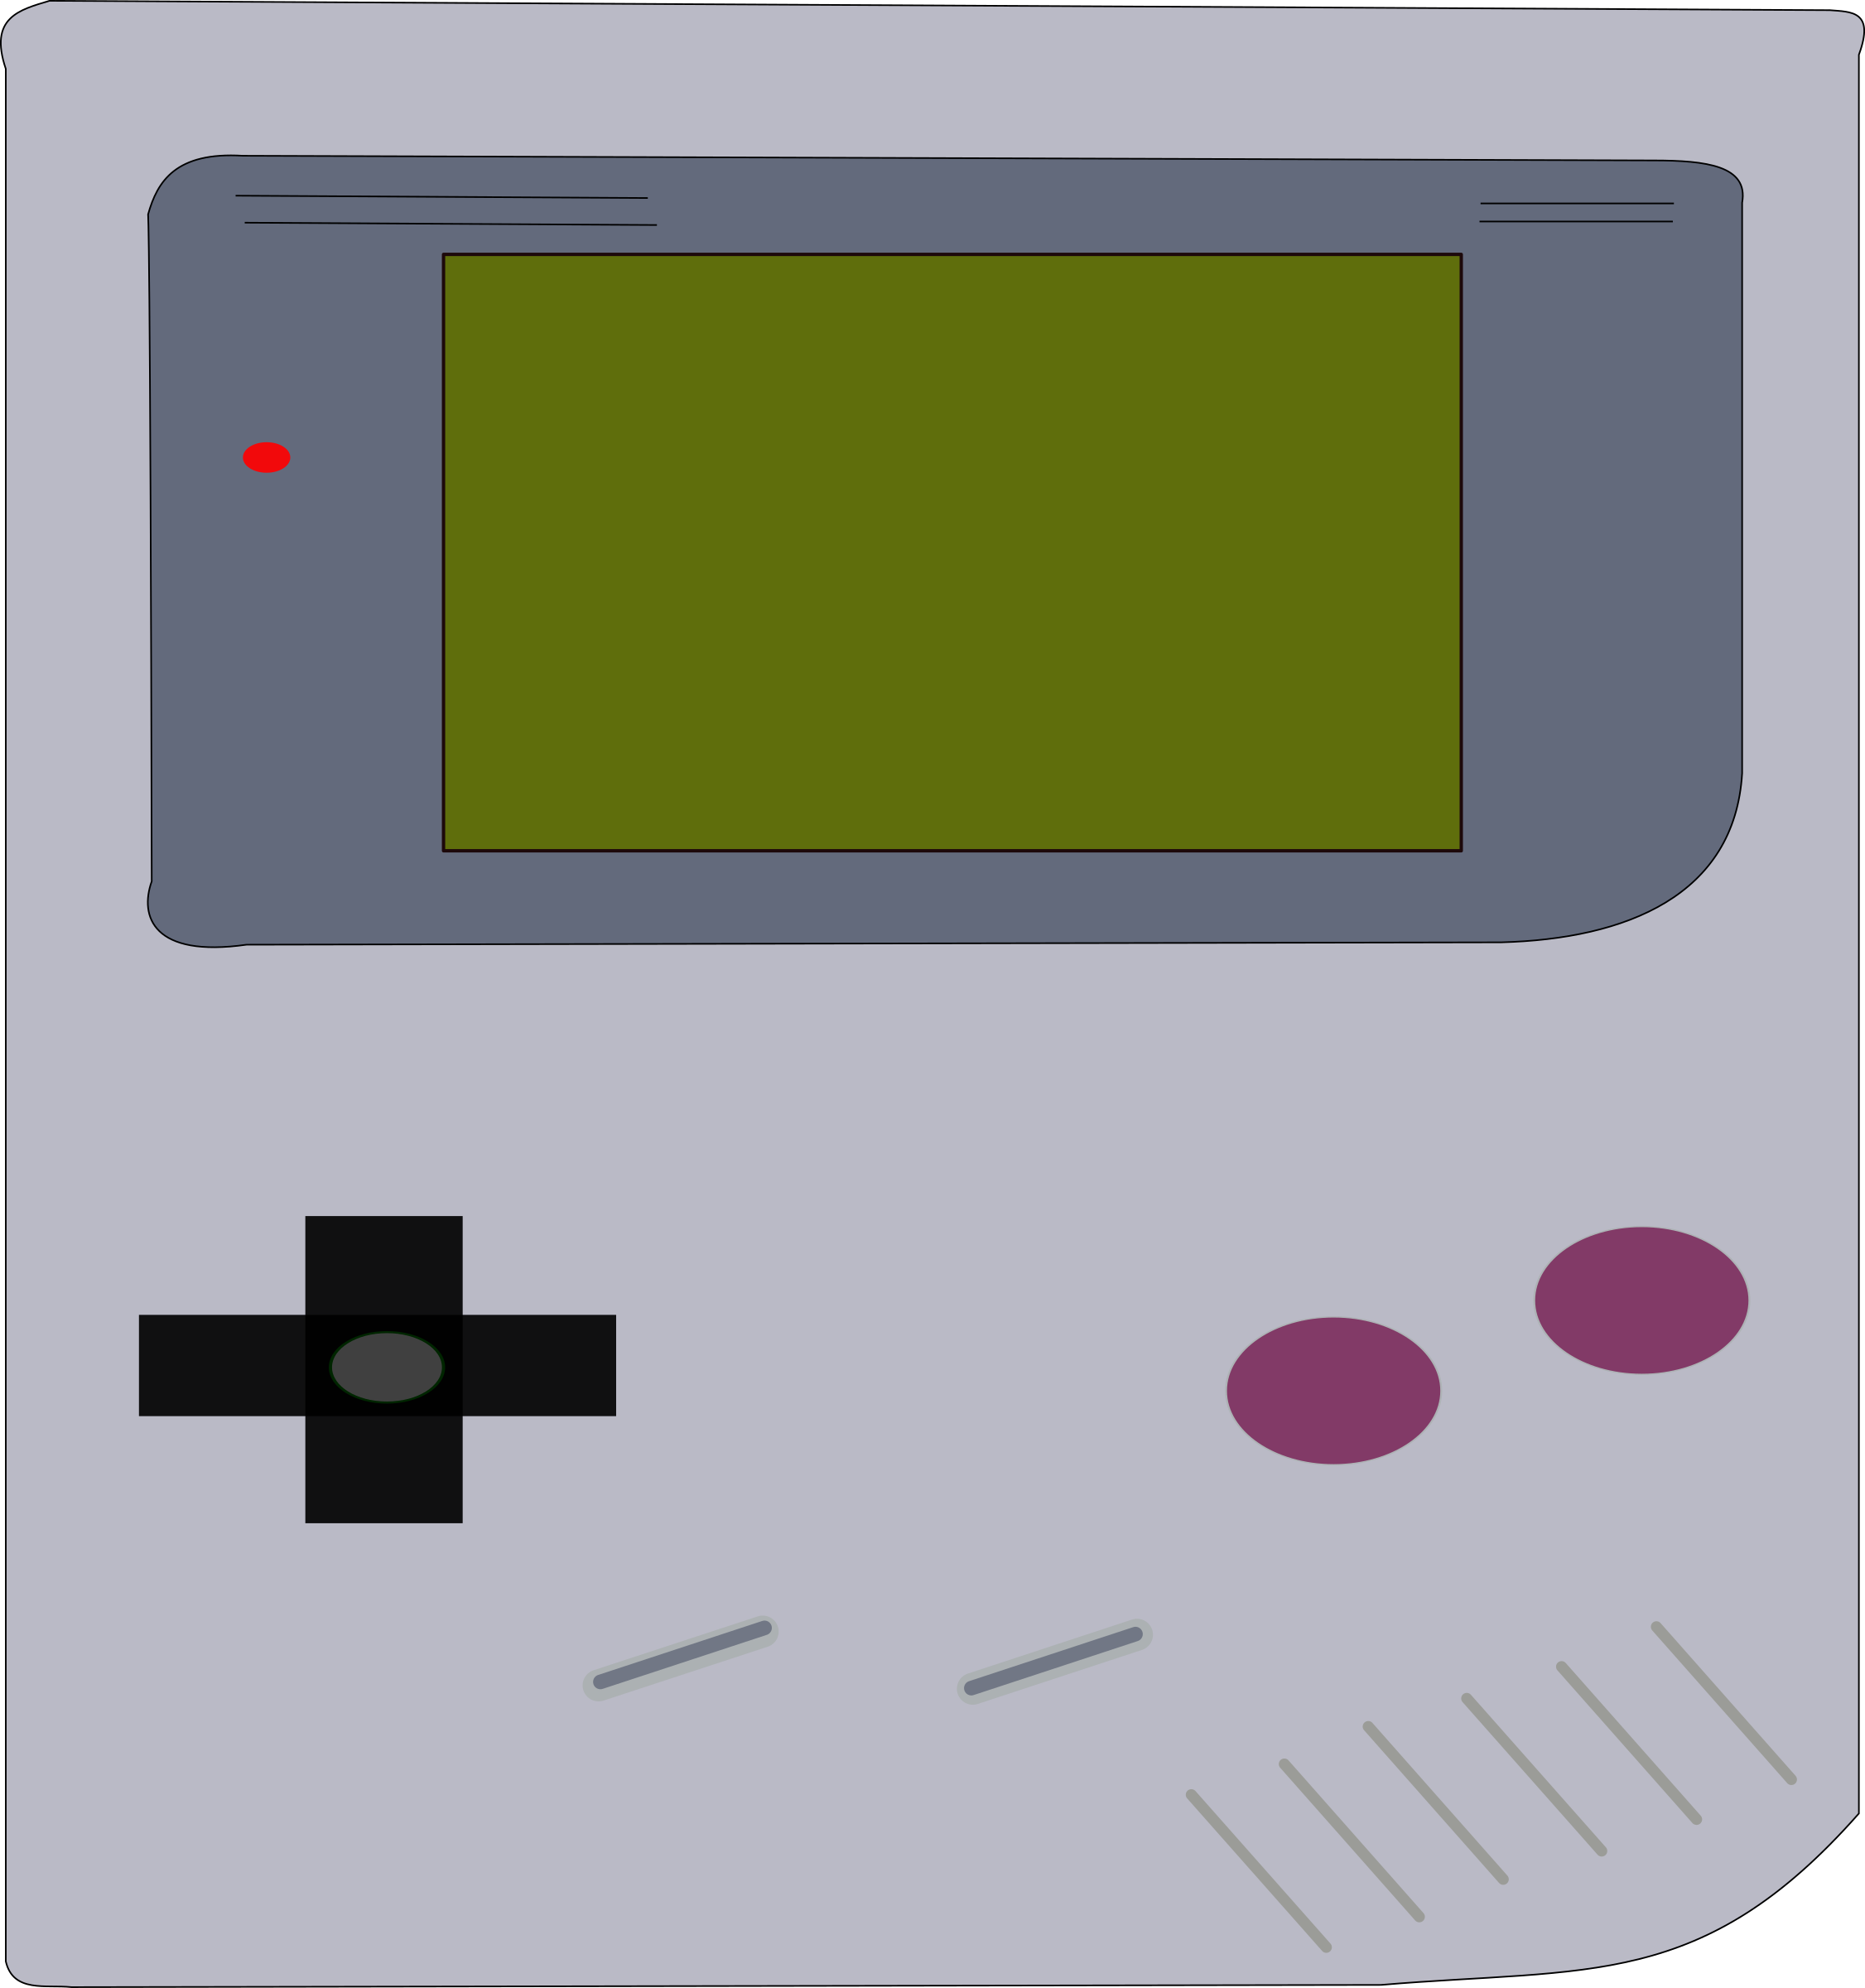 Gameboy by Tavin